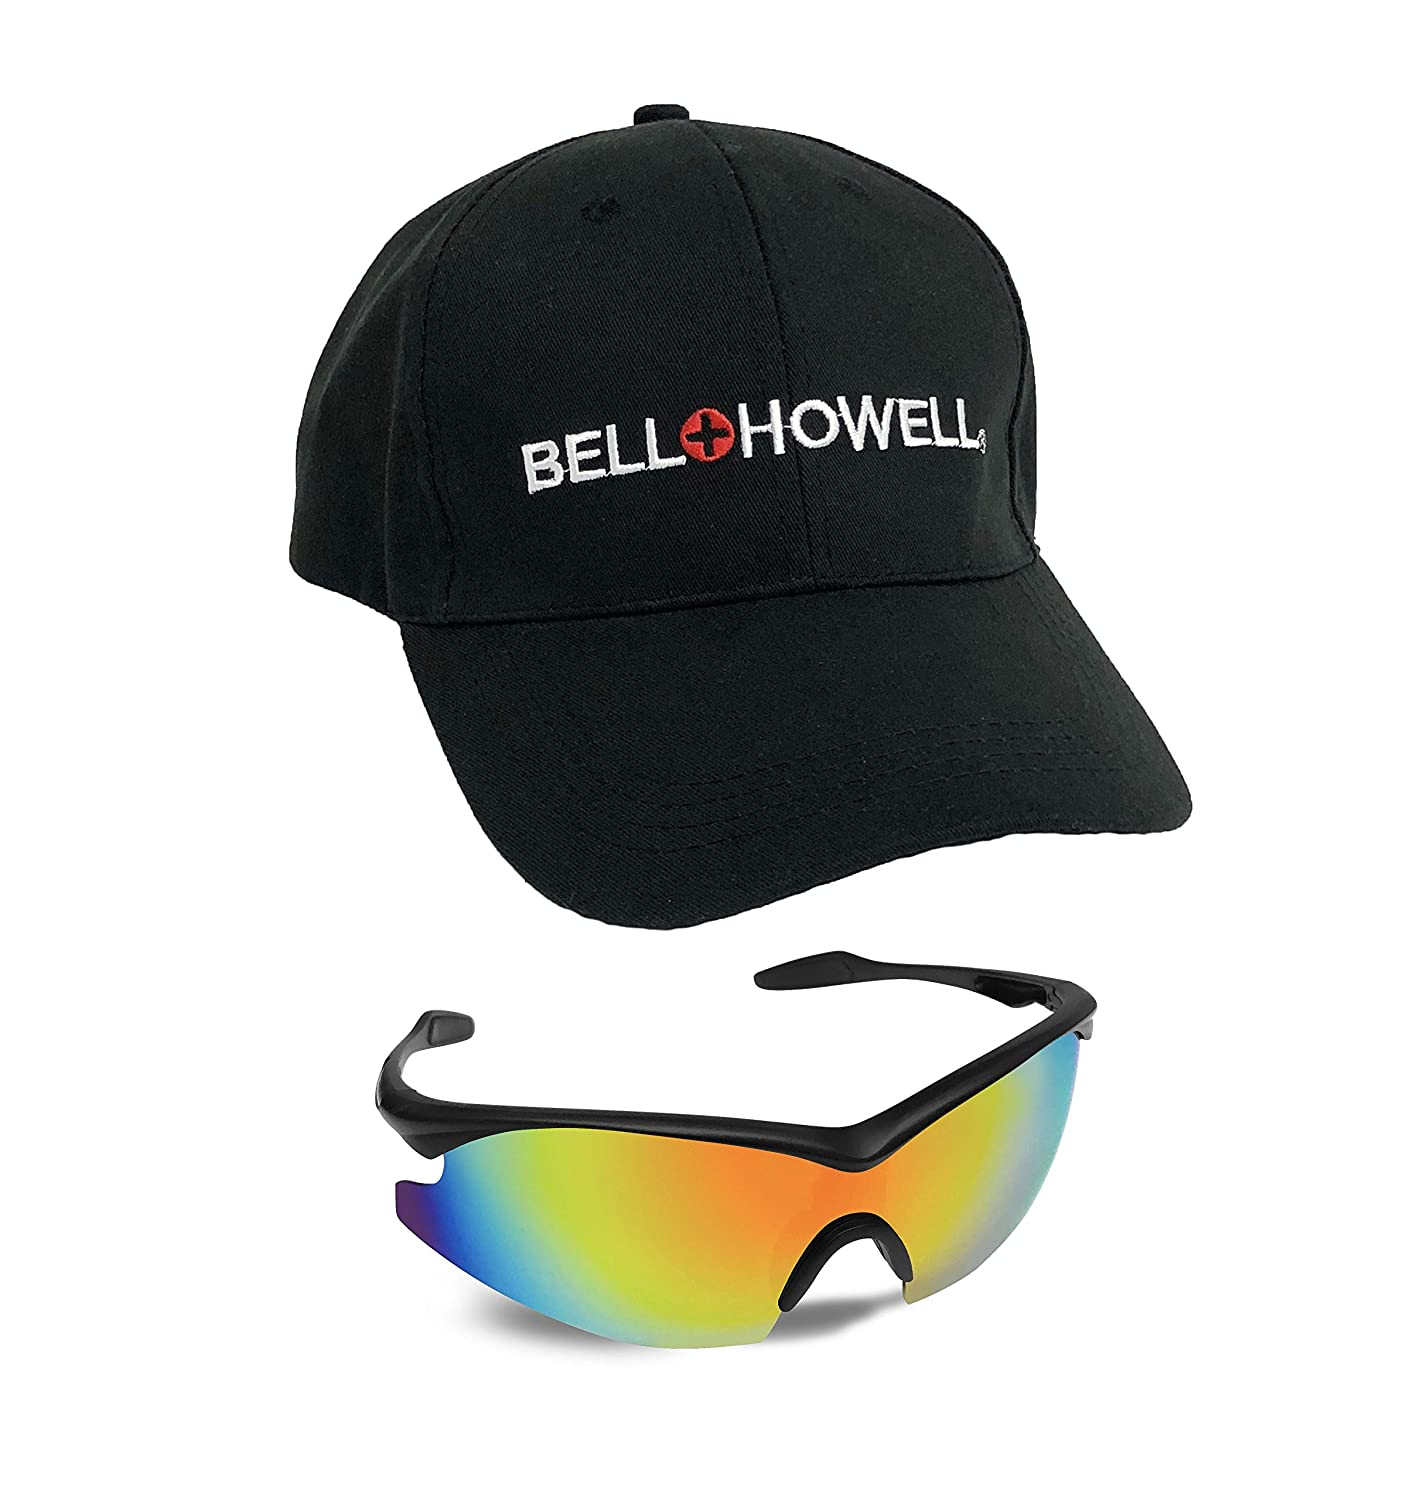 8fdffa4656 Amazon.com  Bell + Howell Sports TAC GLASSES with Cap